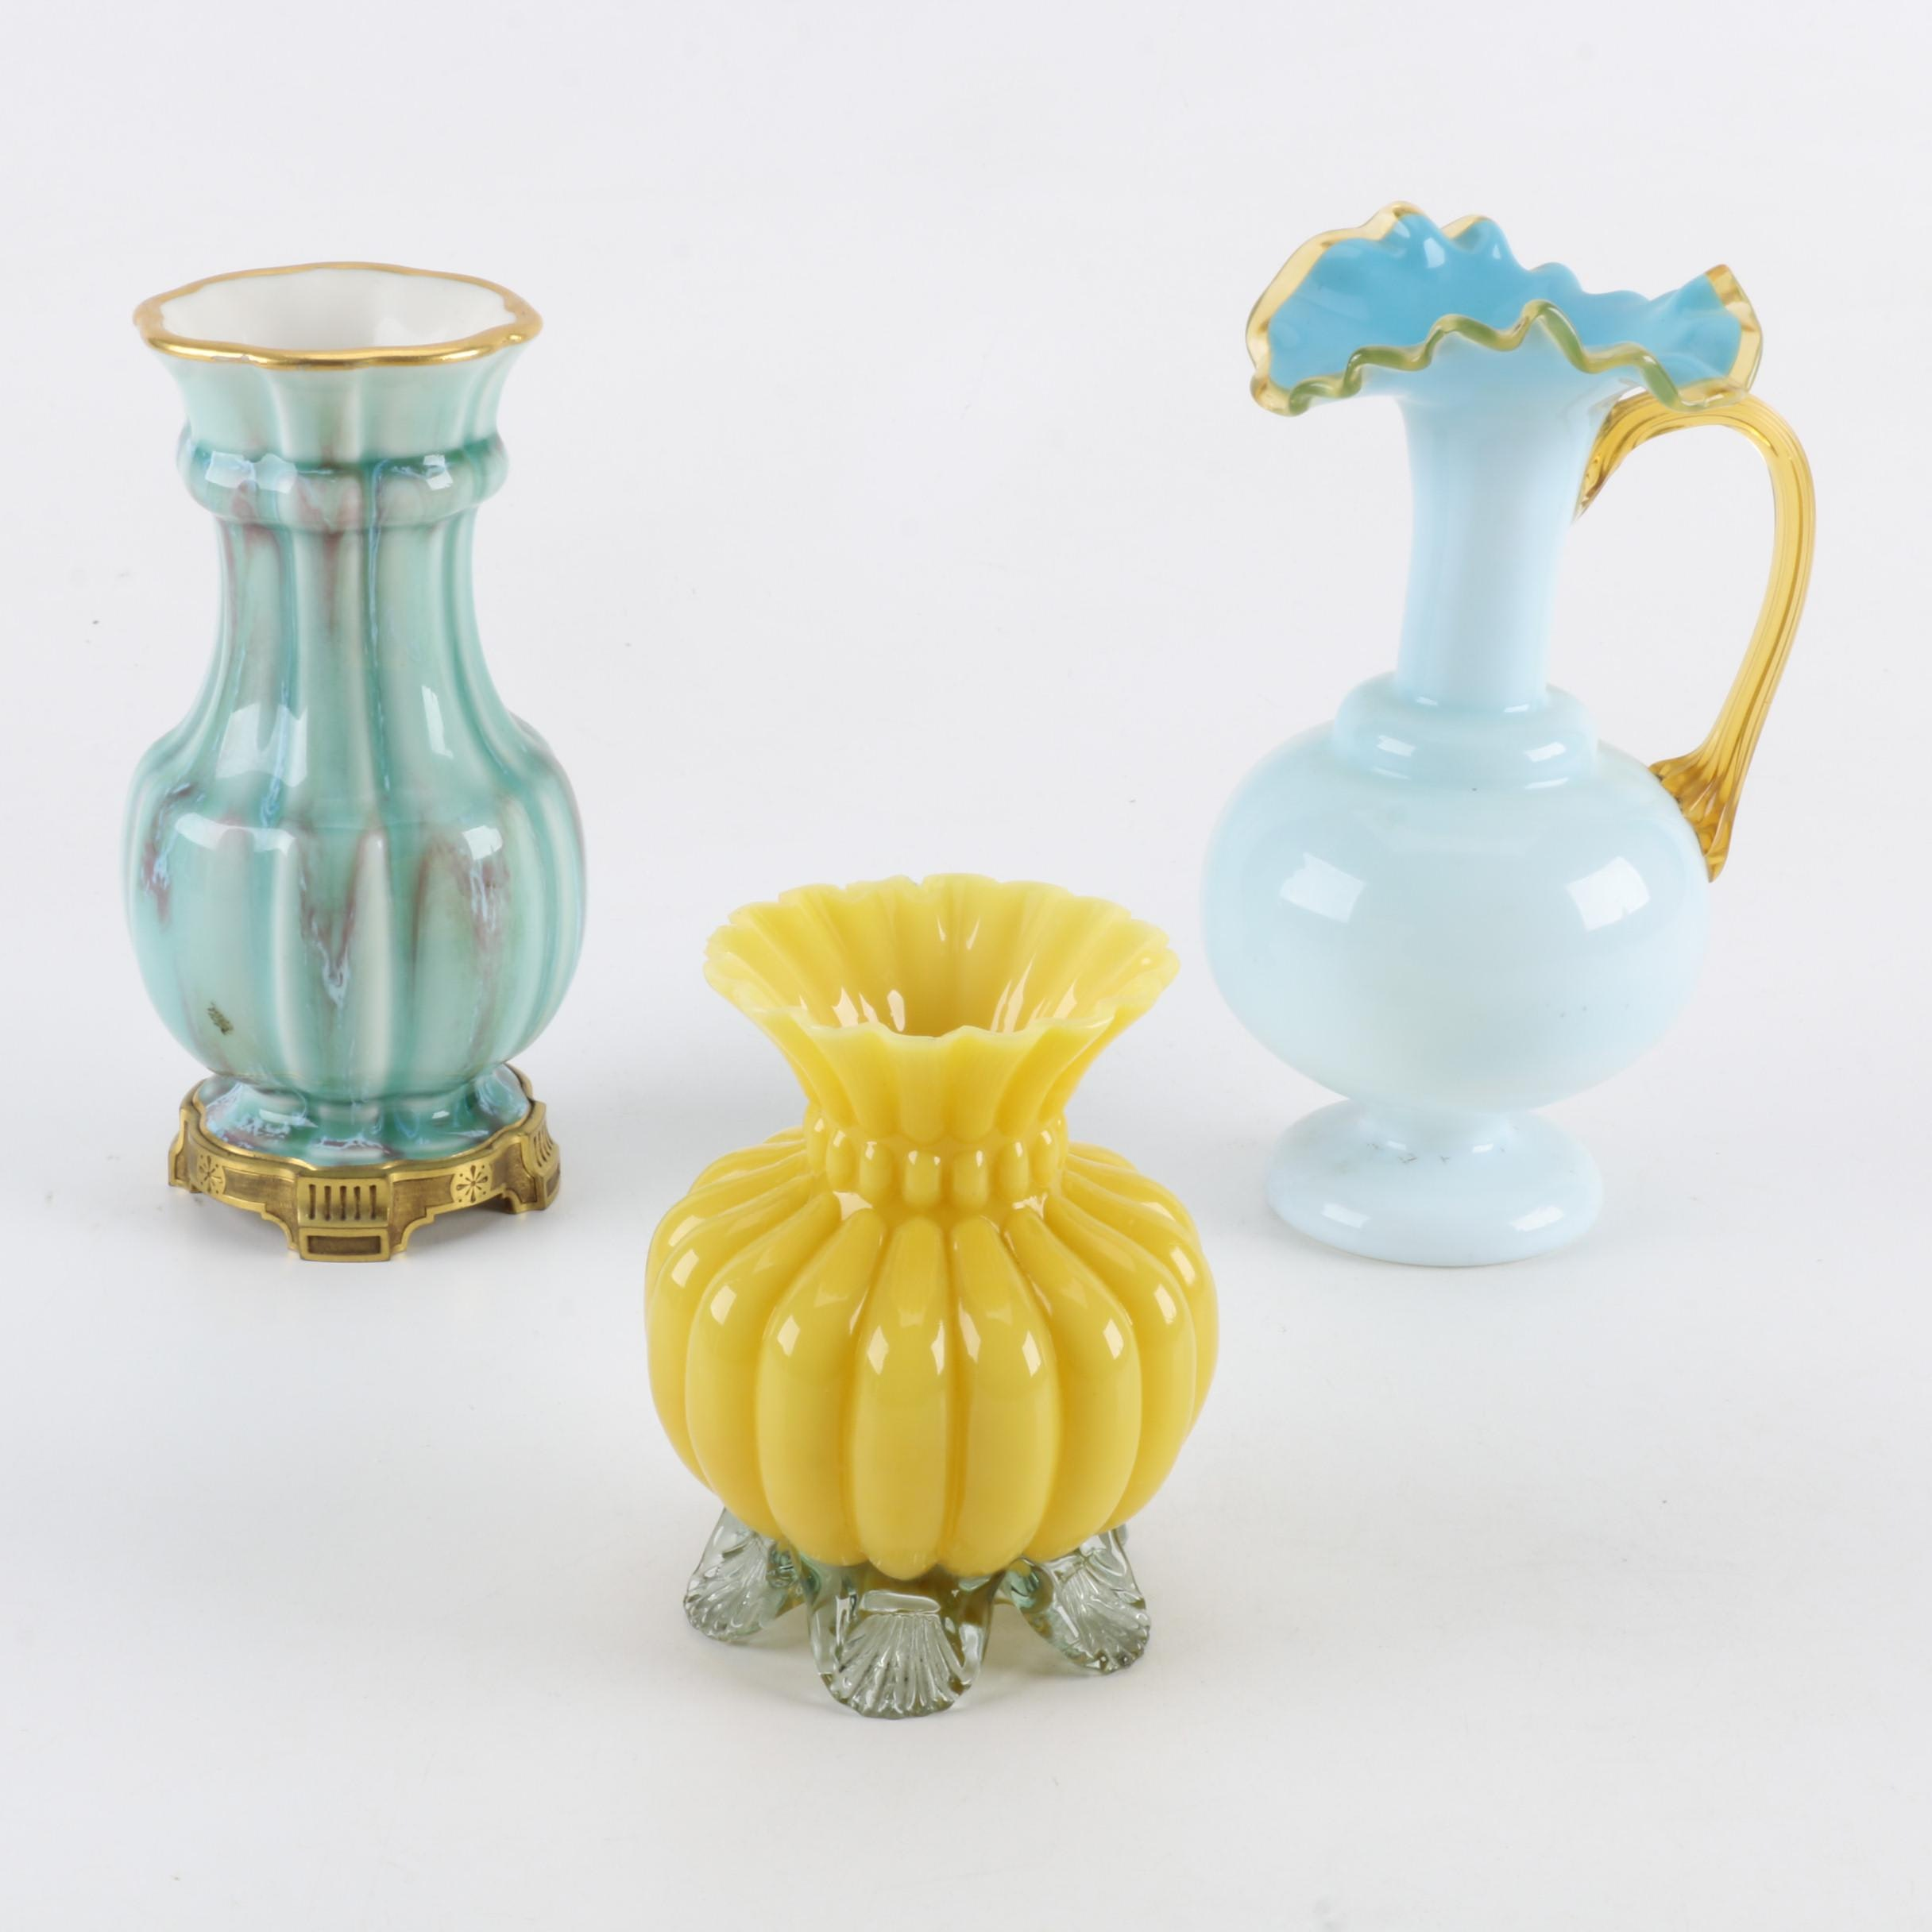 19th Century Doré a Sevres Vase and Art Glass Tableware